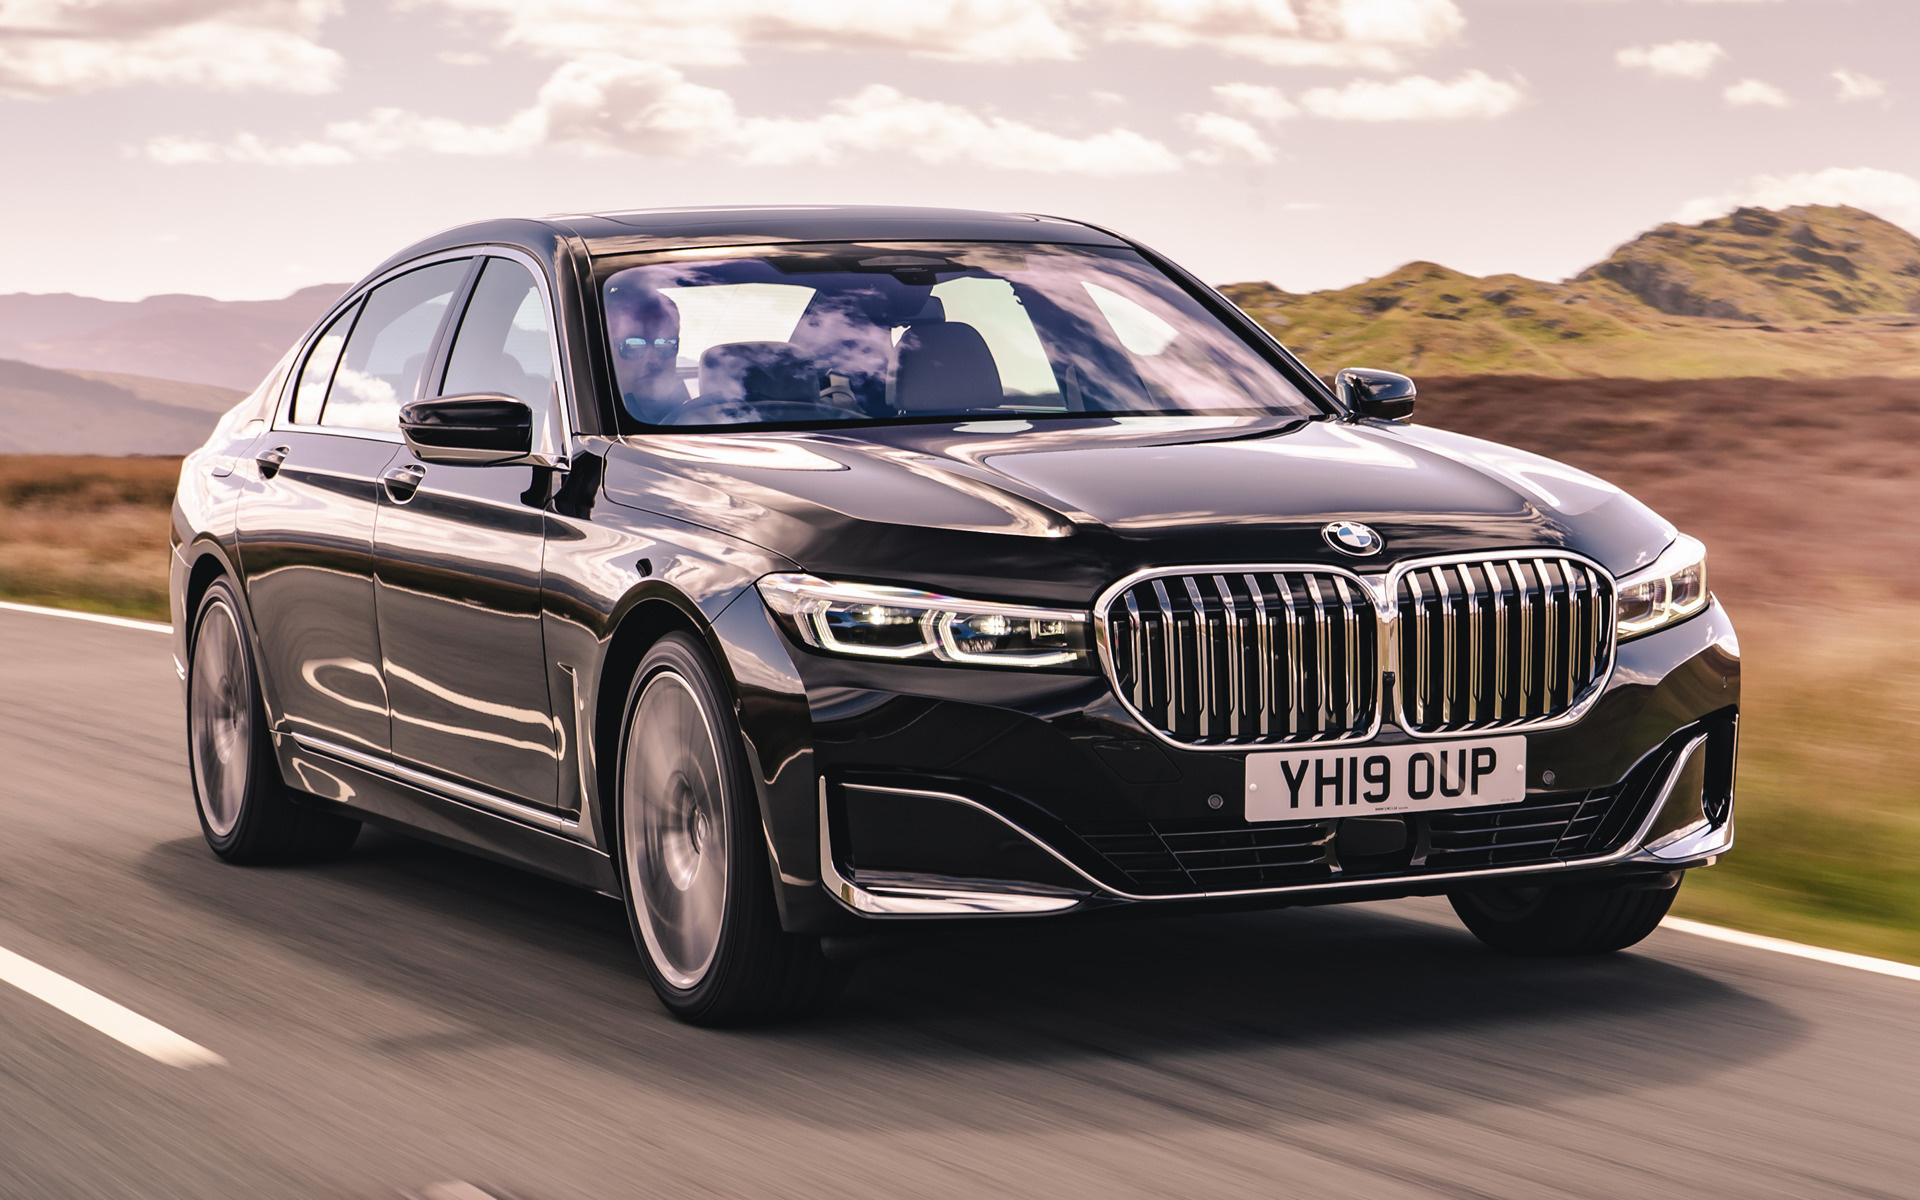 2019 BMW 7 Series LWB (UK) - Wallpapers and HD Images ...